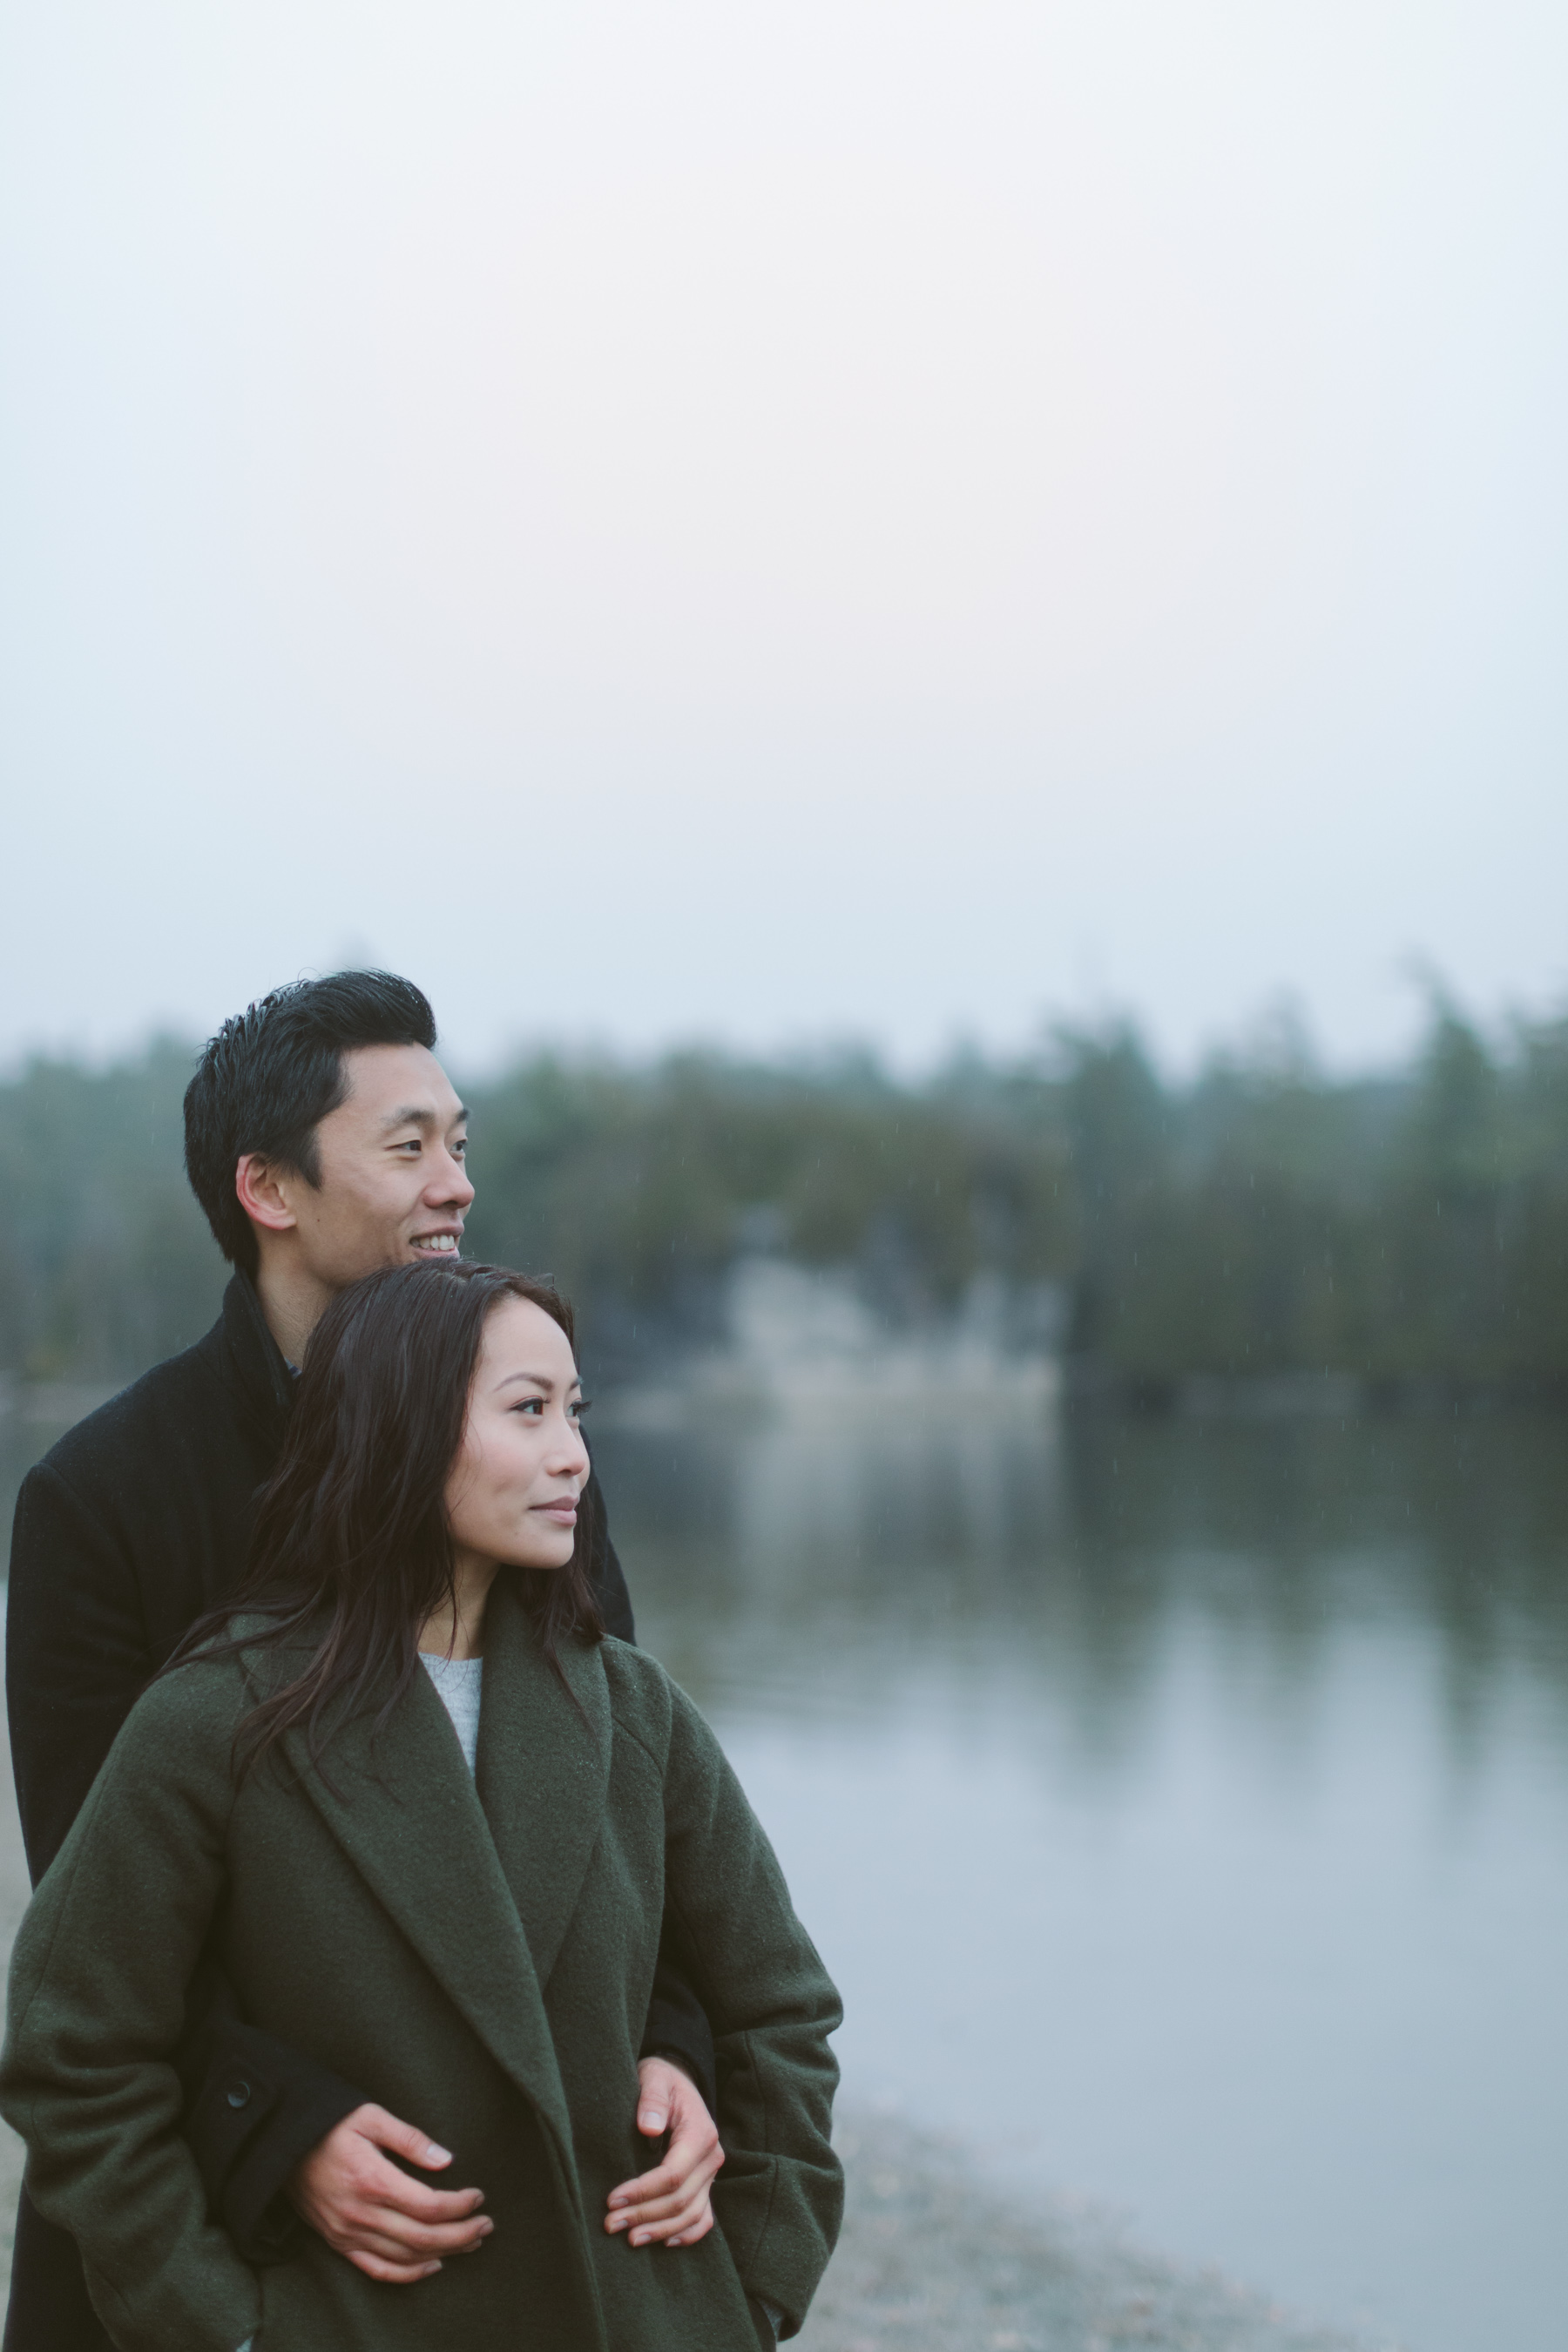 Rainy_Day_Engagement_Photos_Toronto_Wedding_Photographer_Melissa_Sung_Photography_0011.jpg